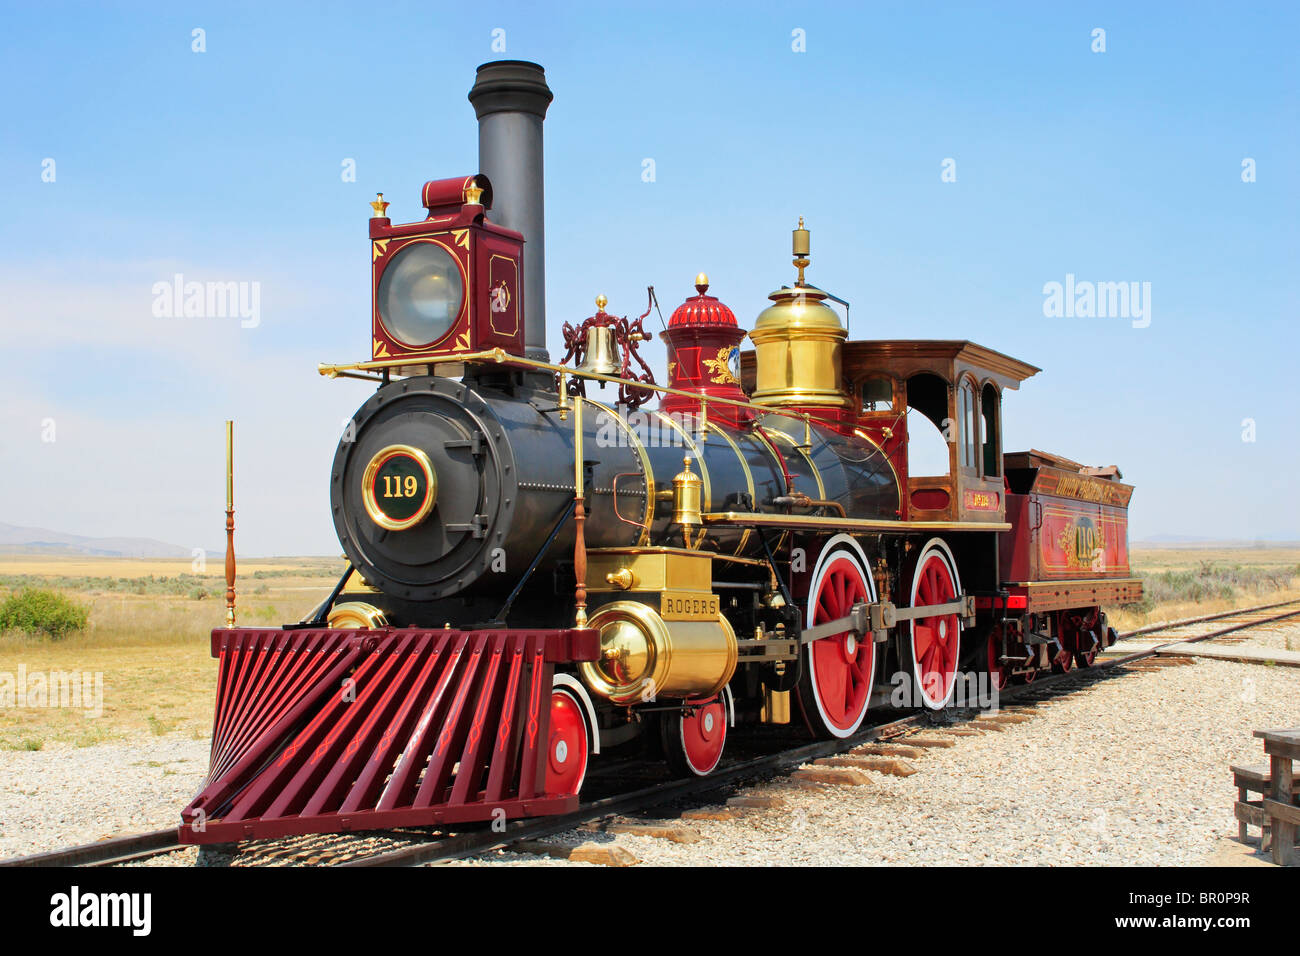 Union Pacific Railroad #119 sits on the rails at Golden Spike National Historic site at Promontory Summit in Utah. - Stock Image